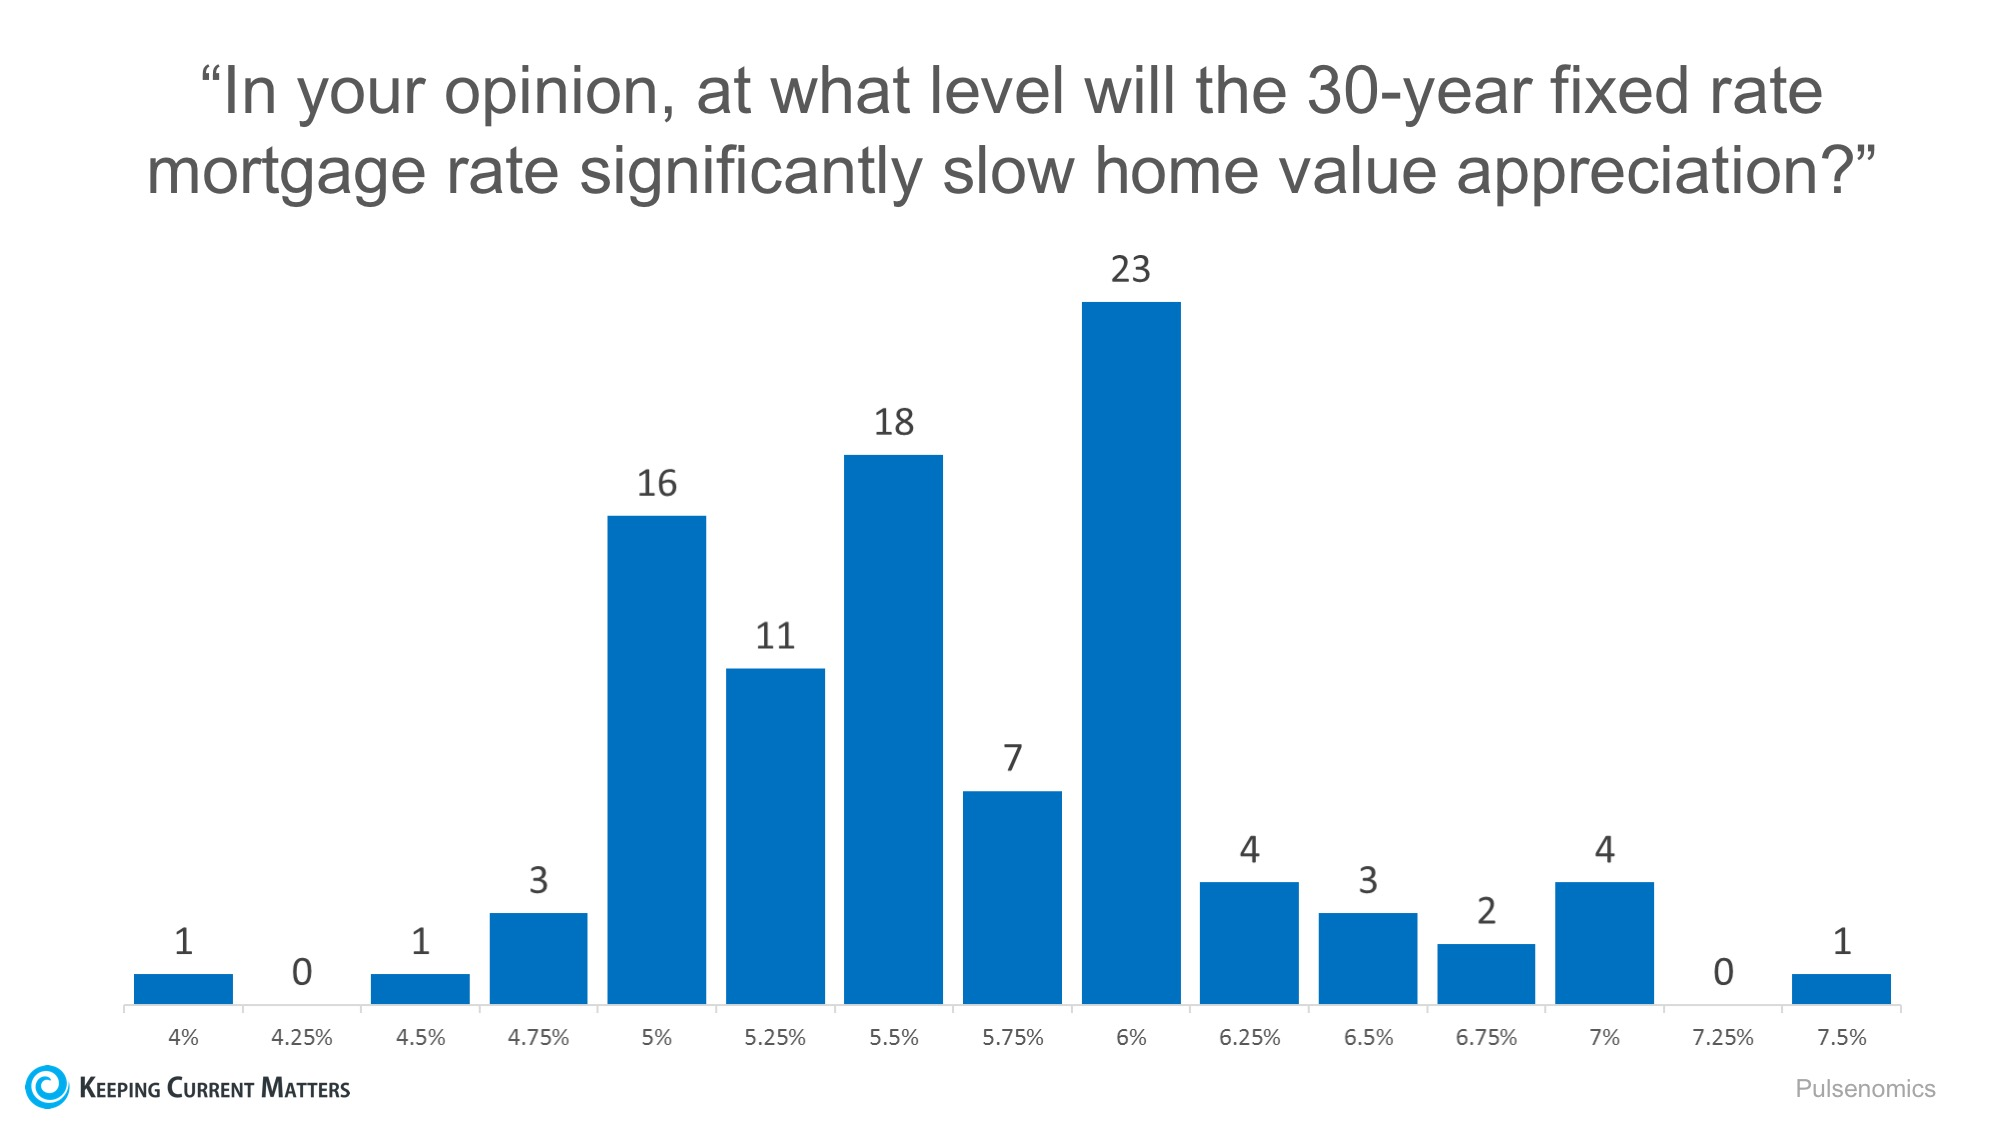 Mortgage Rates Impact on 2017 Home Values   Keeping Current Matters